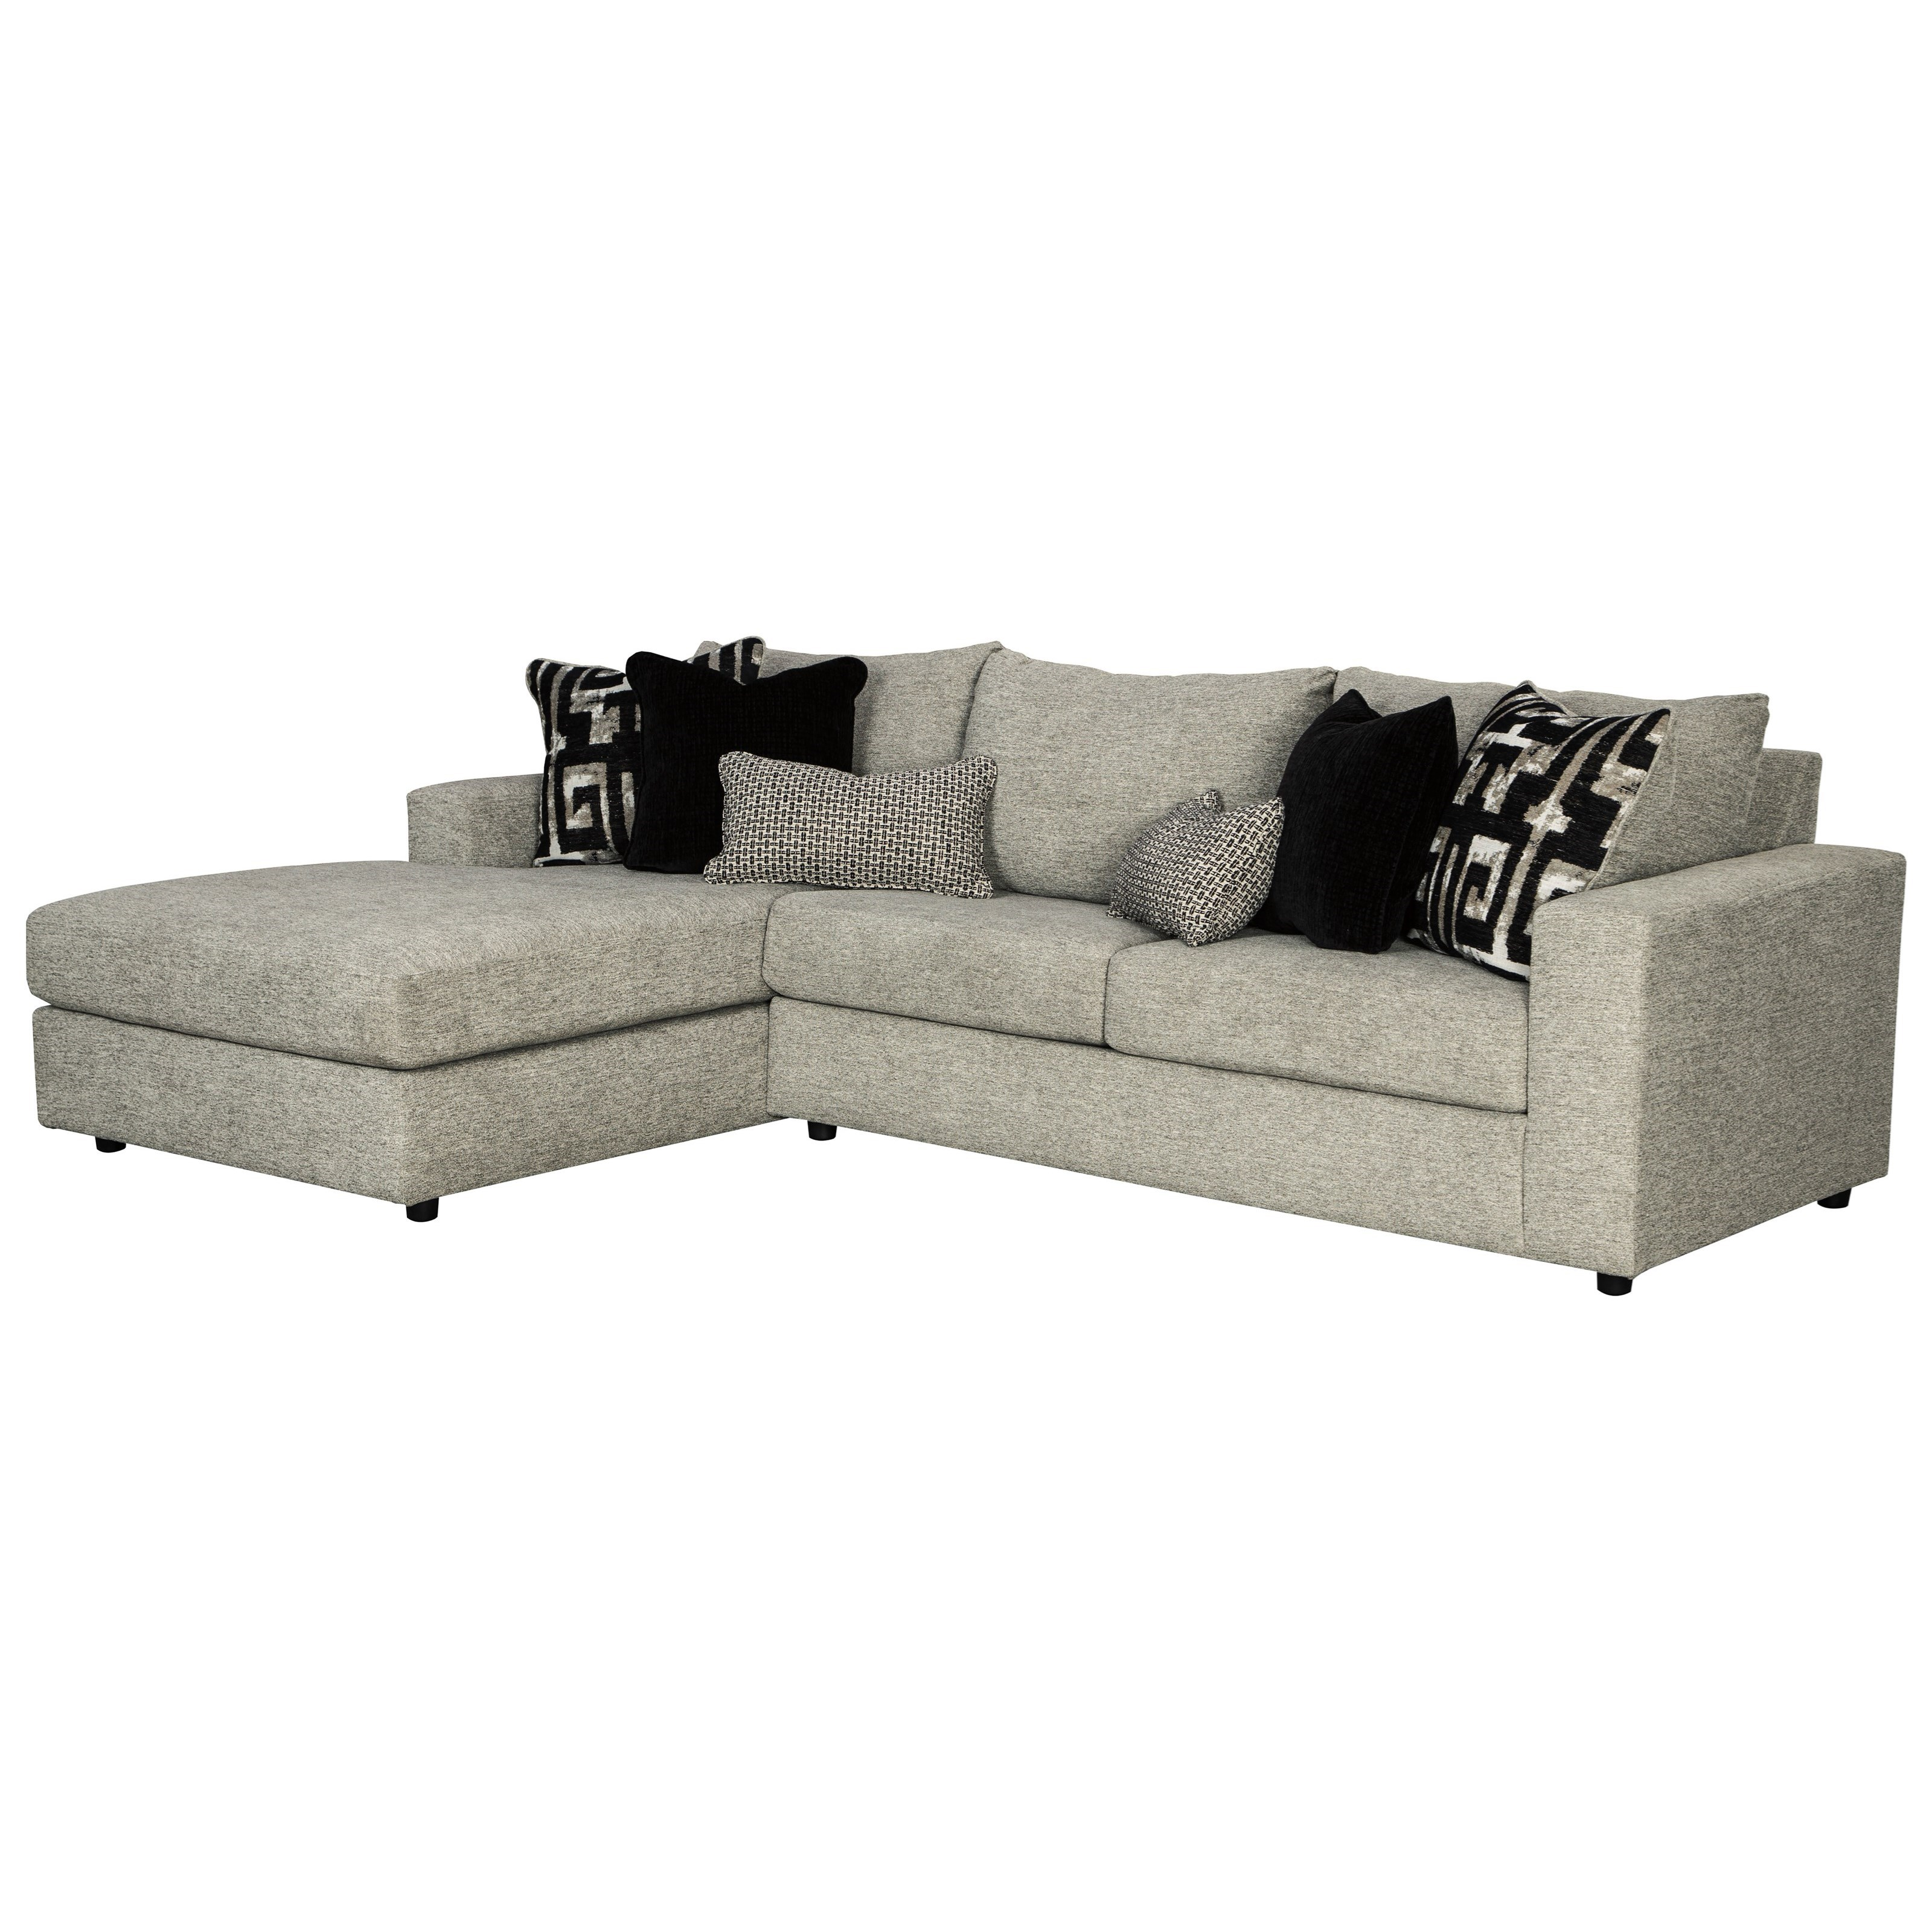 Ravenstone 3-Seat Sectional Sofa w/ LAF Chaise by Signature at Walker's Furniture